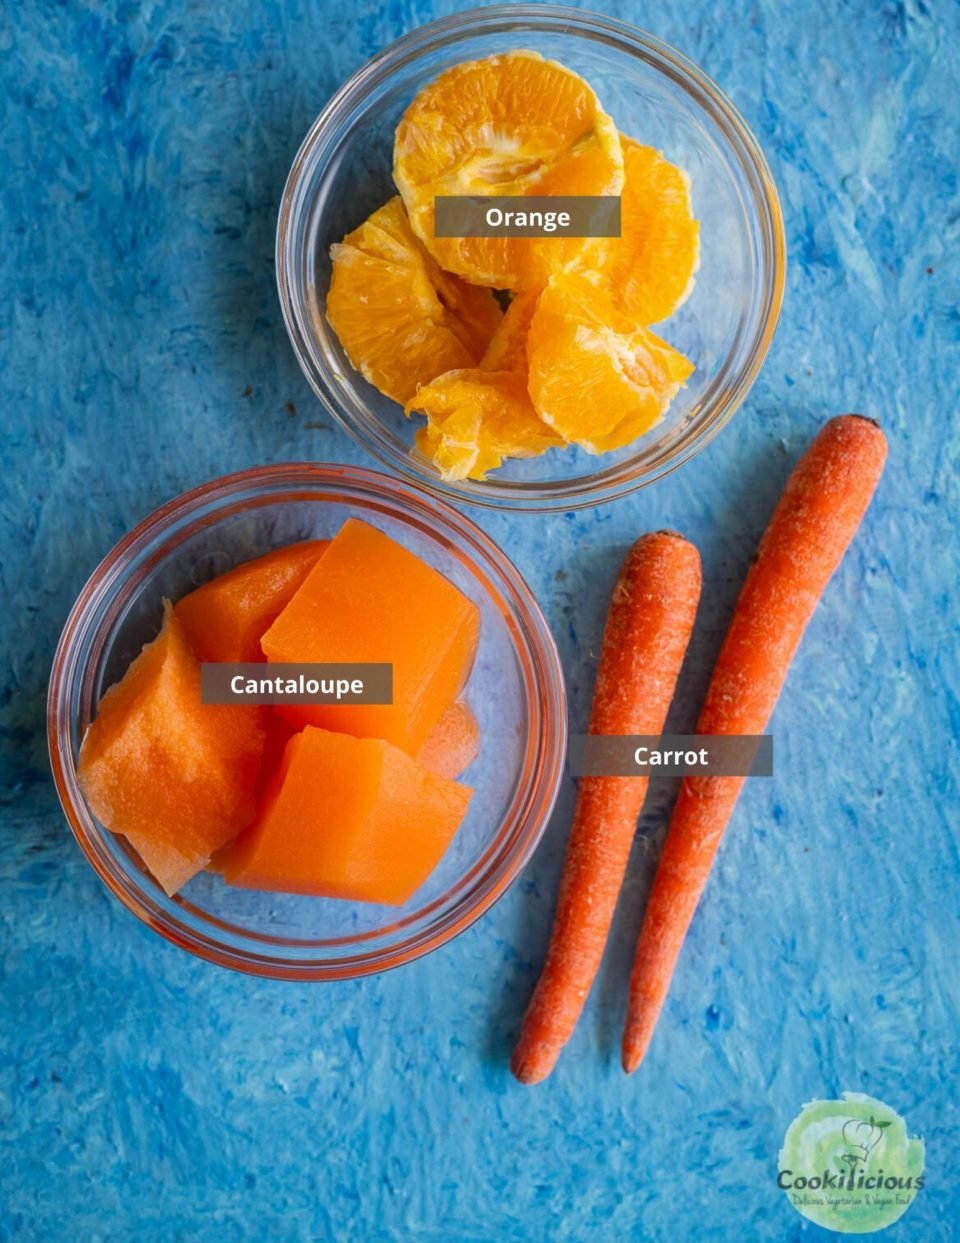 all the ingredients used to make Organic Energy Drink With Carrots, Orange and Cantaloupe placed in a tray with labels on them